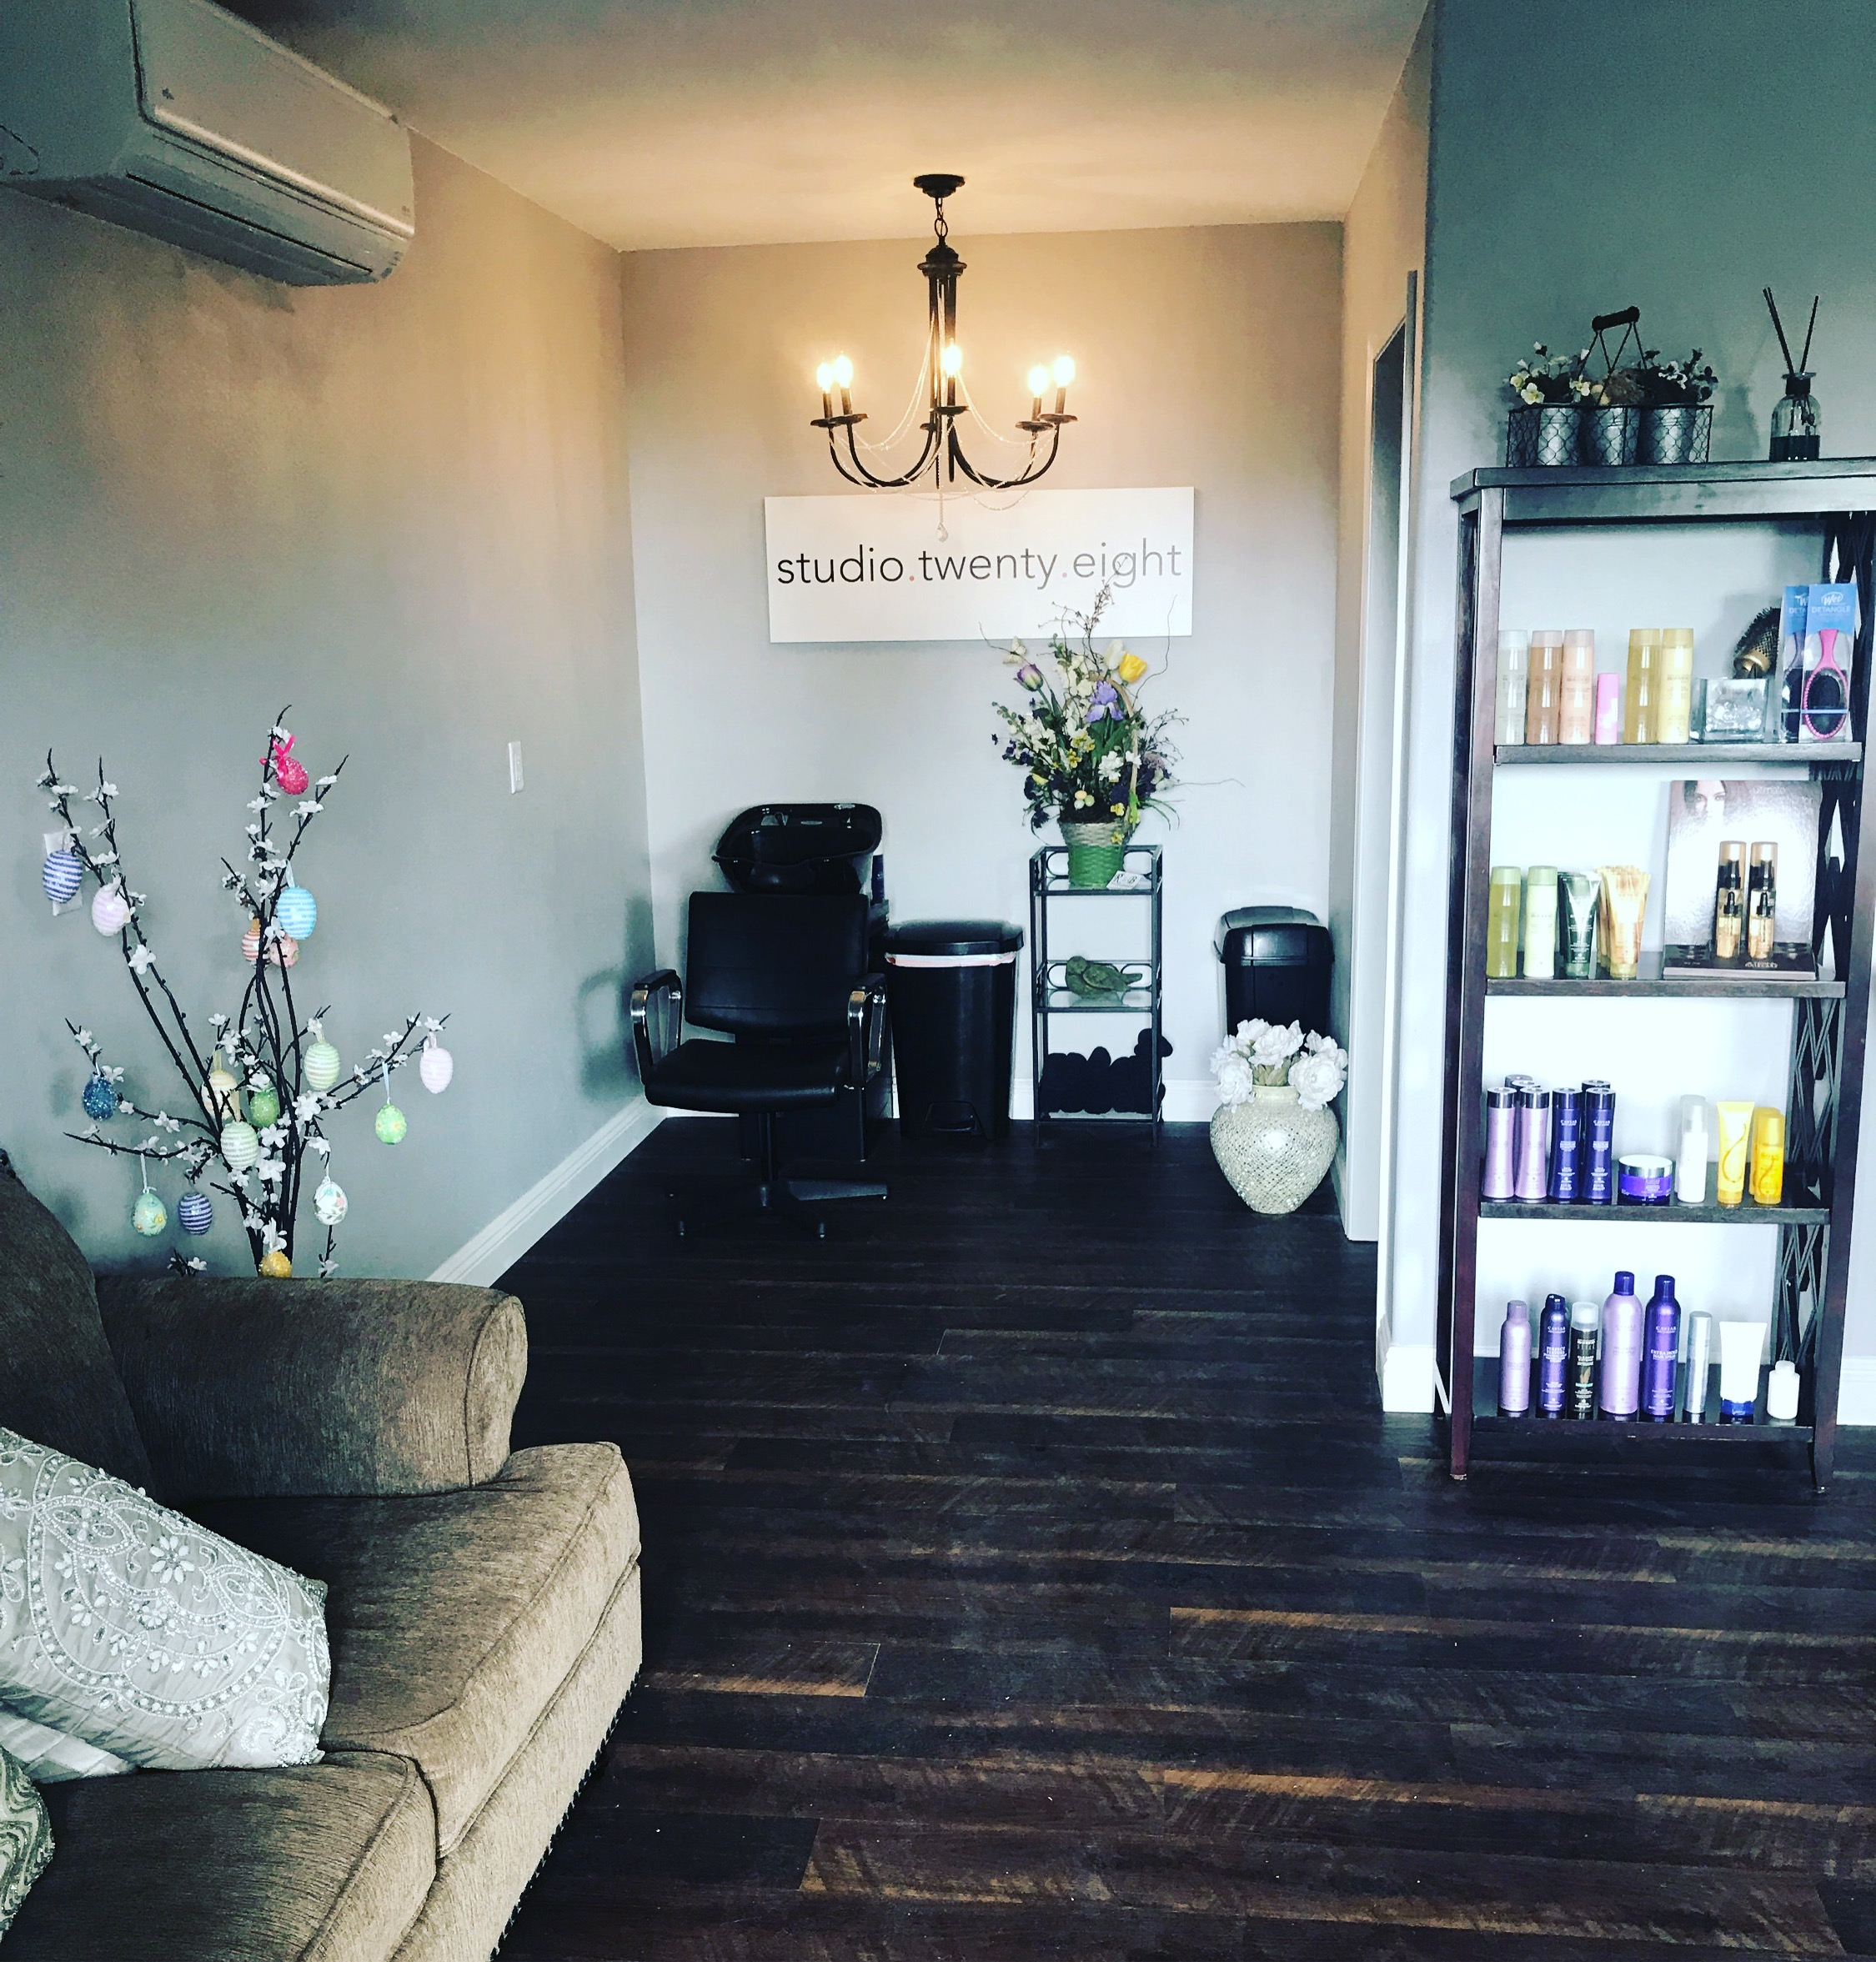 A boutique hair salon just outside of Kailua Kona. Specializing in color, Balayage, and haircutting services.  -